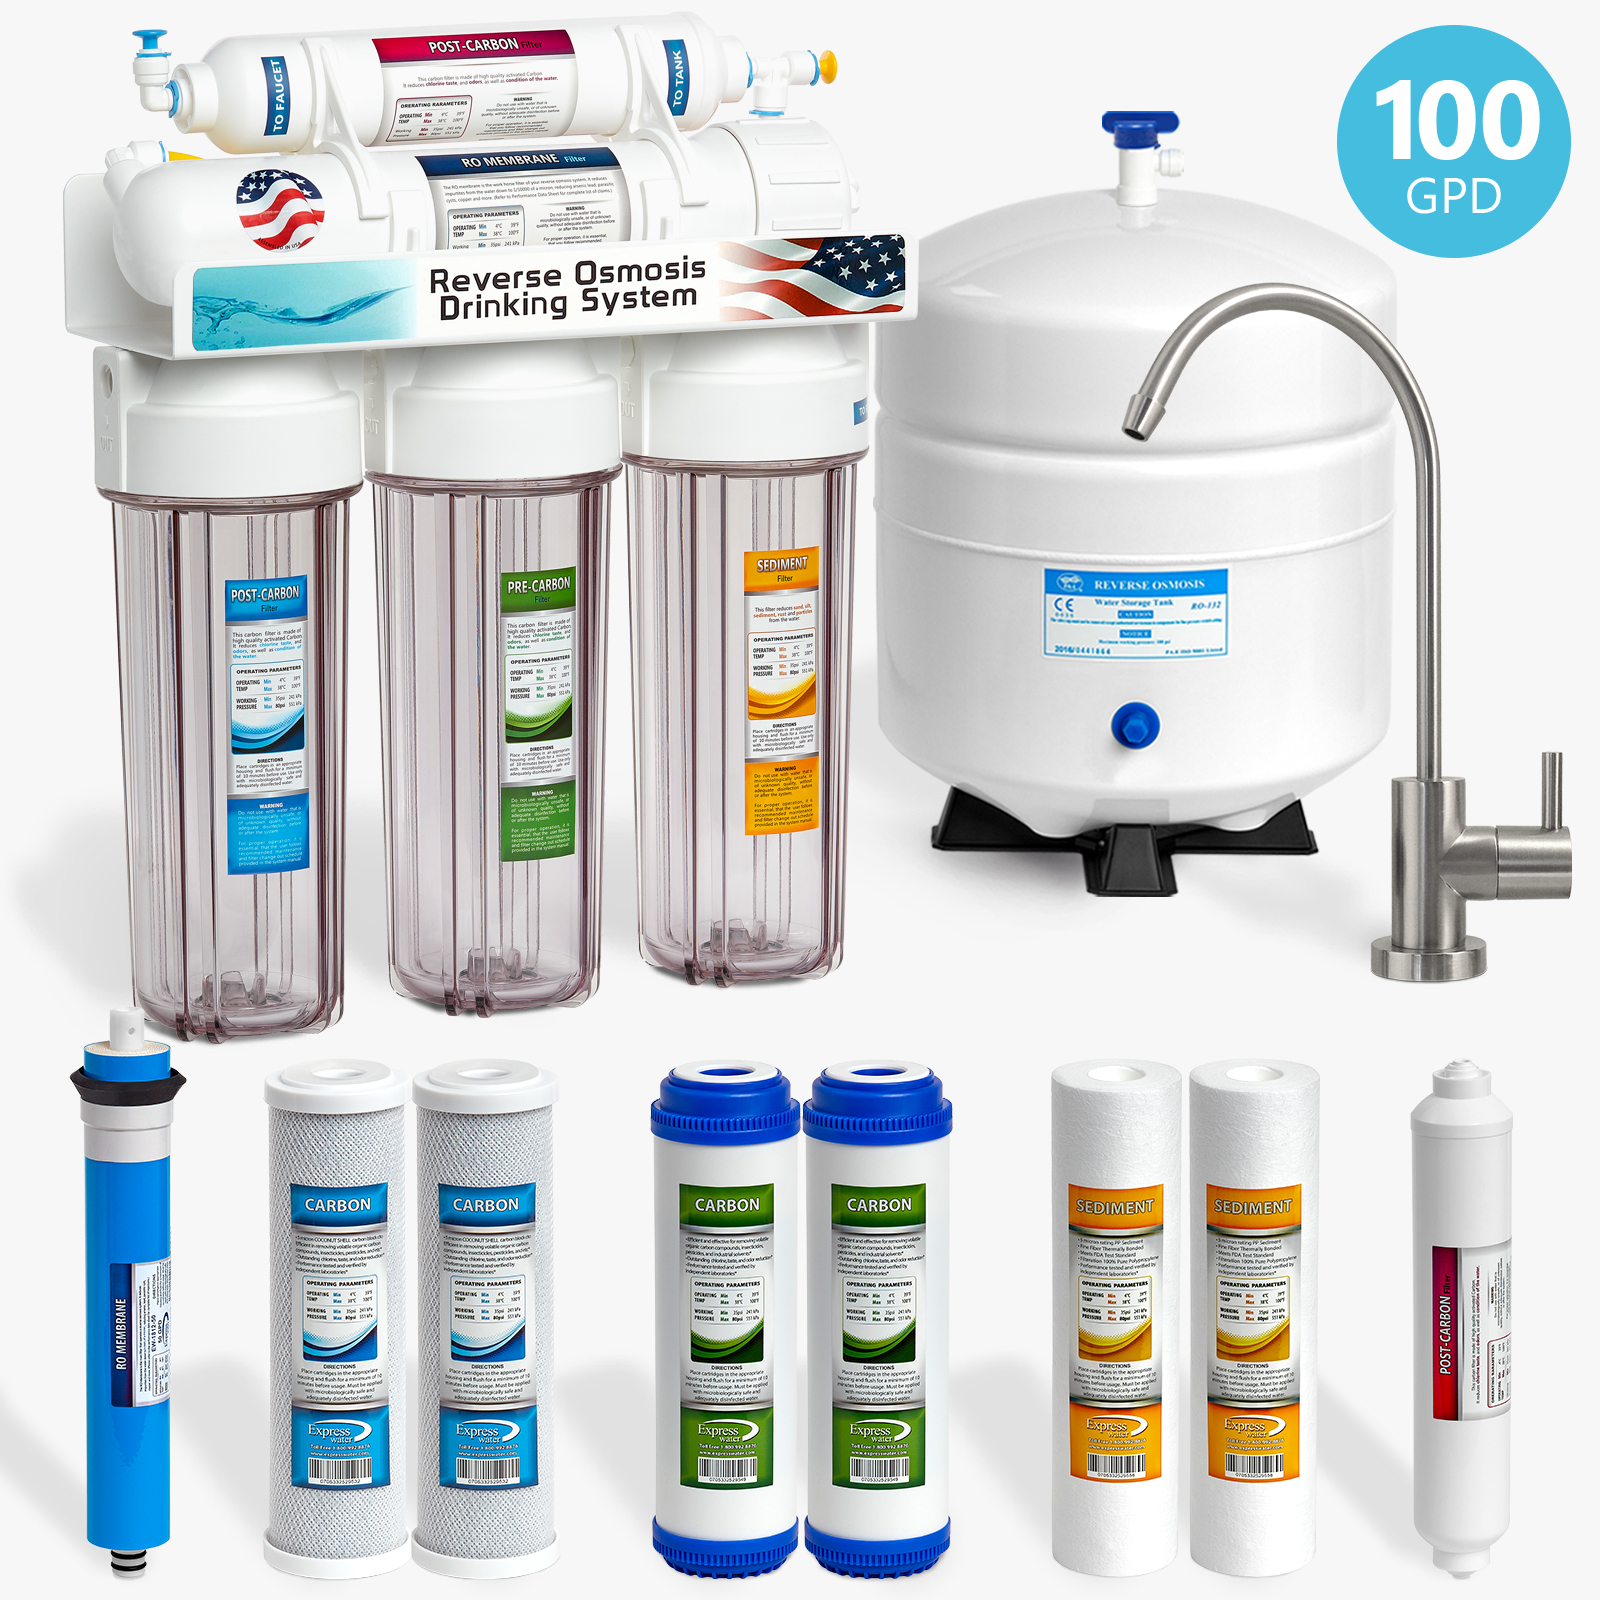 Express Water 5-Stage Under Sink Reverse Osmosis RO Drinking Water Filter System, Clear, 100 GPD, Brushed Nickel (Modern)